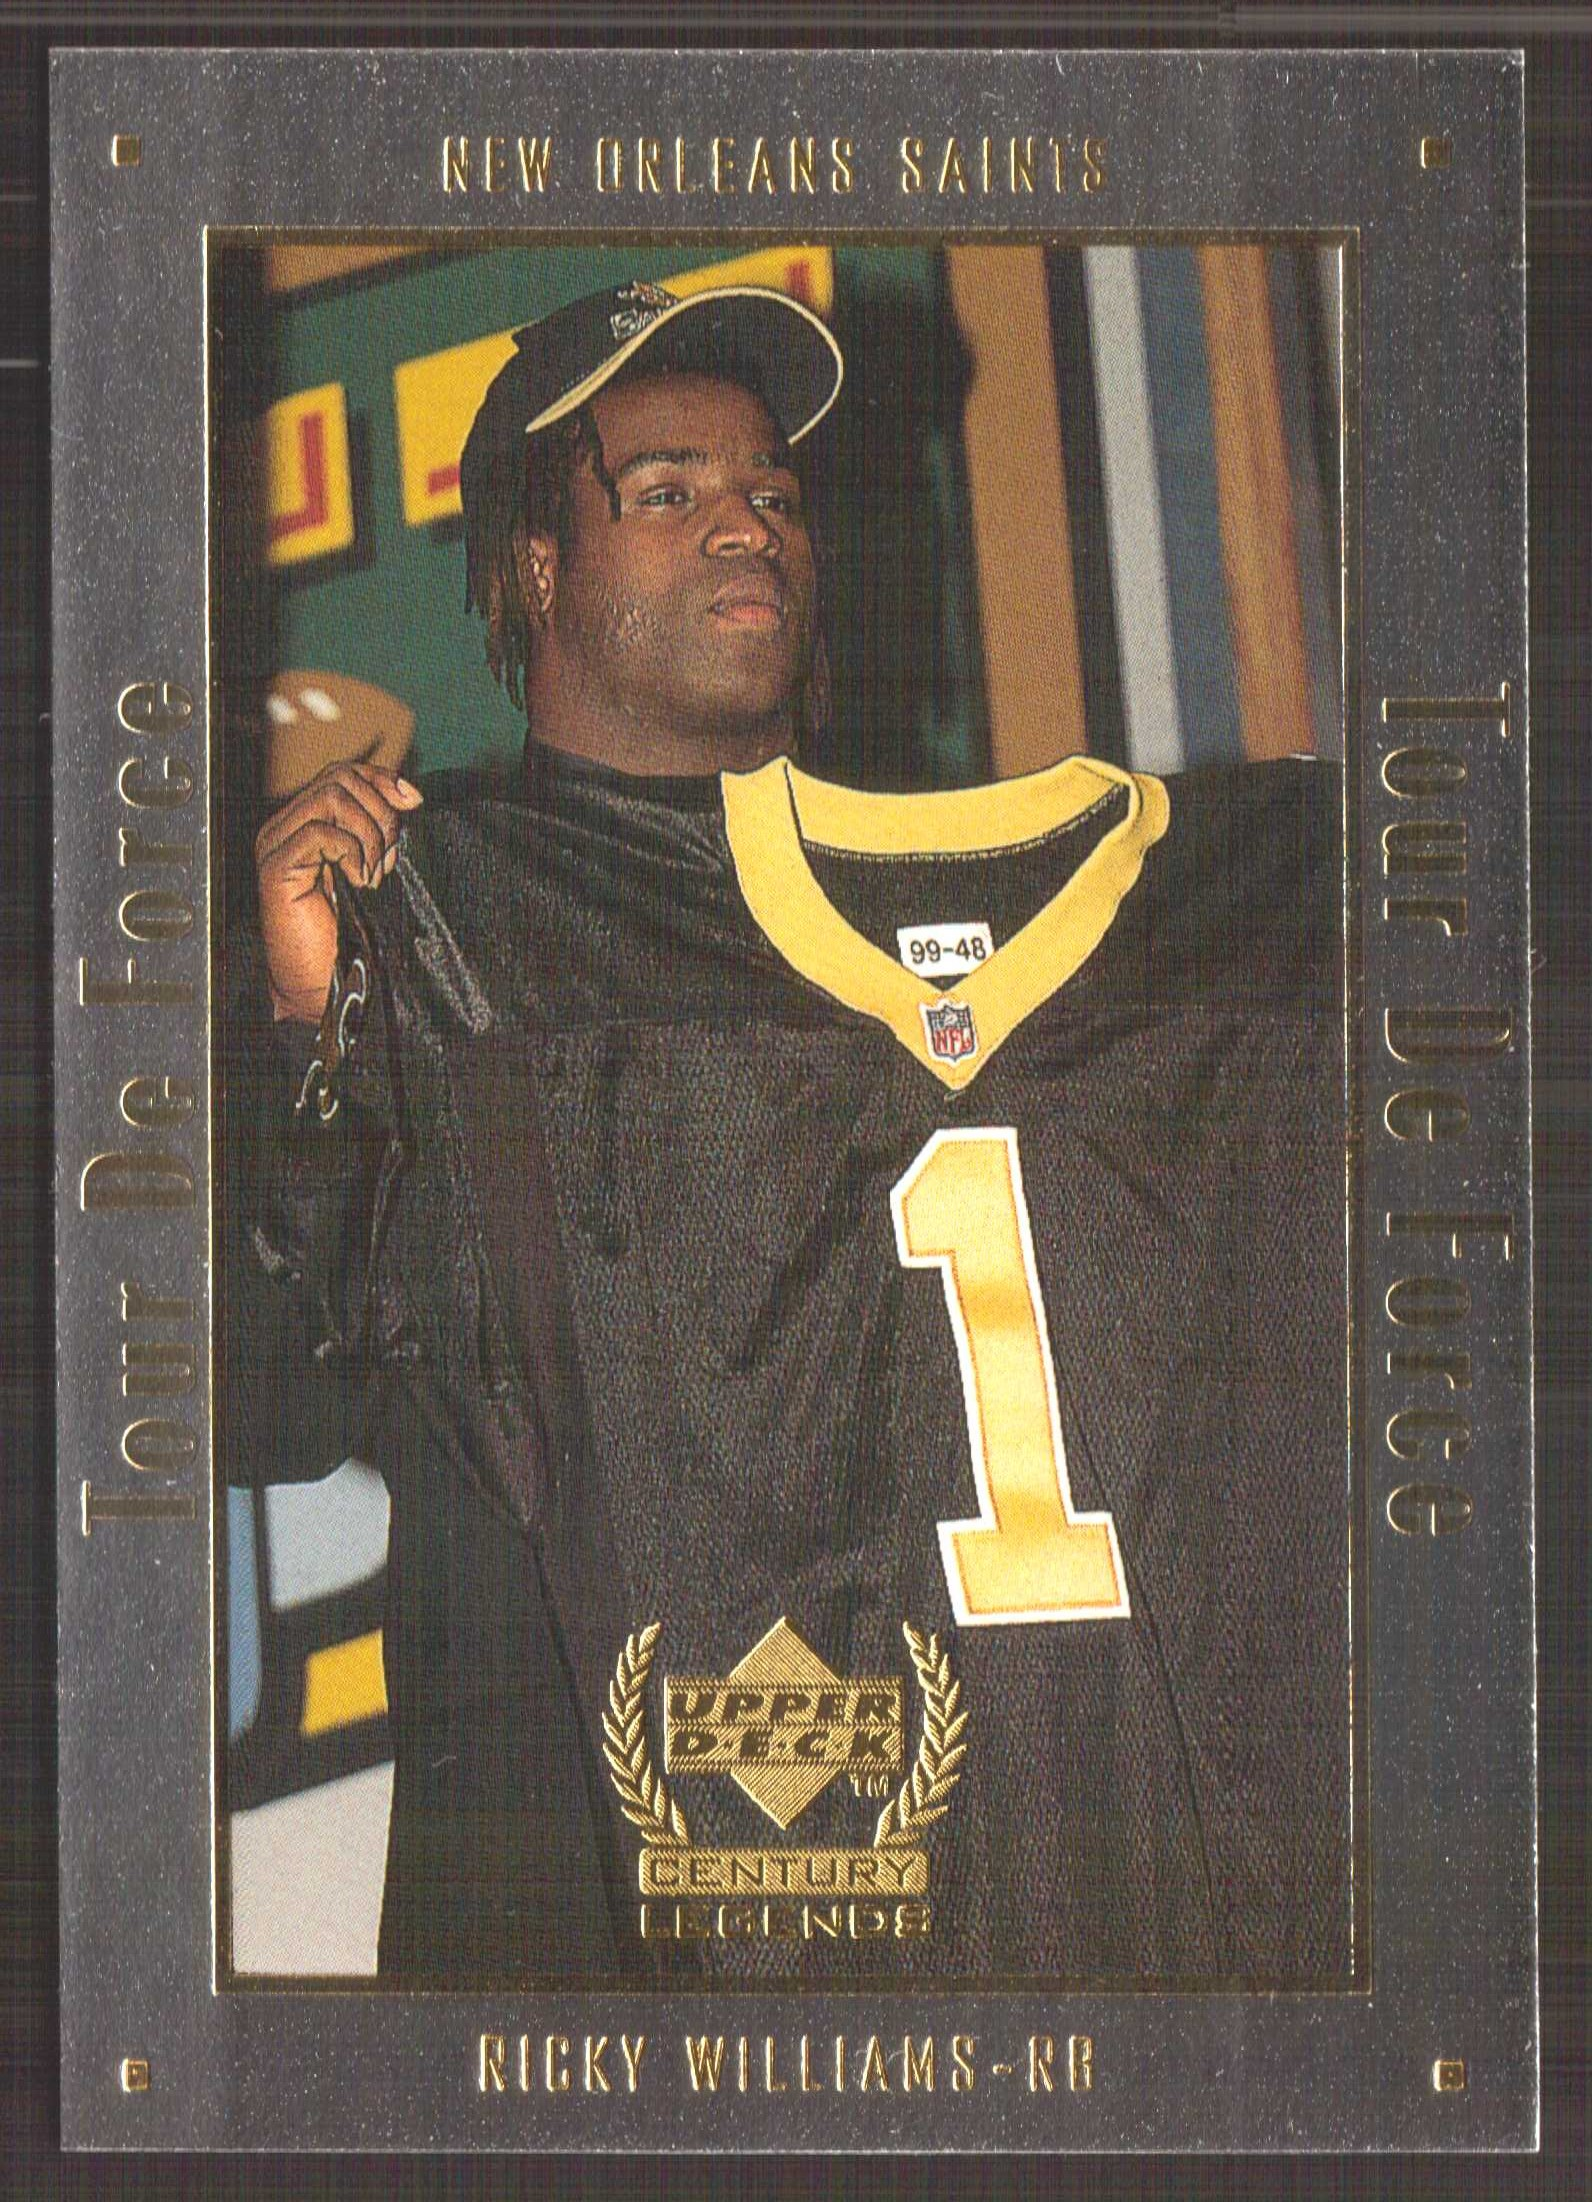 1999 Upper Deck Century Legends Tour de Force #A2 Ricky Williams front image